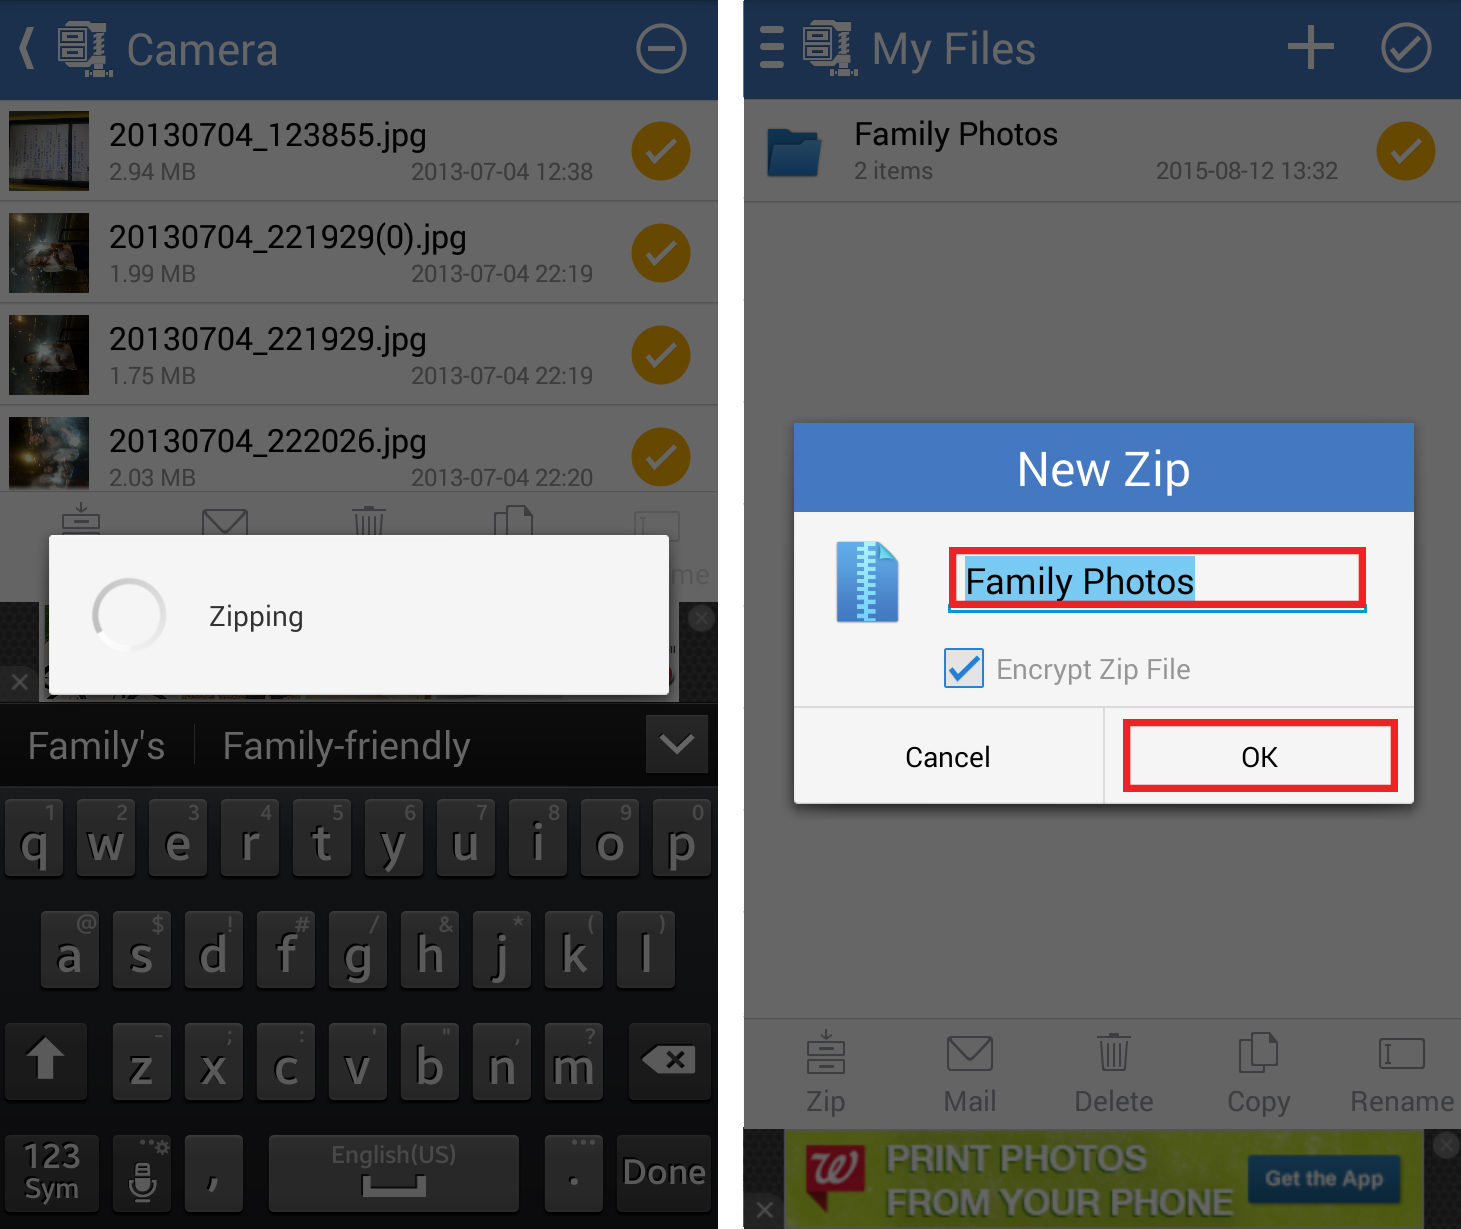 Steps 4 and 5 in creating ZIP files on Android